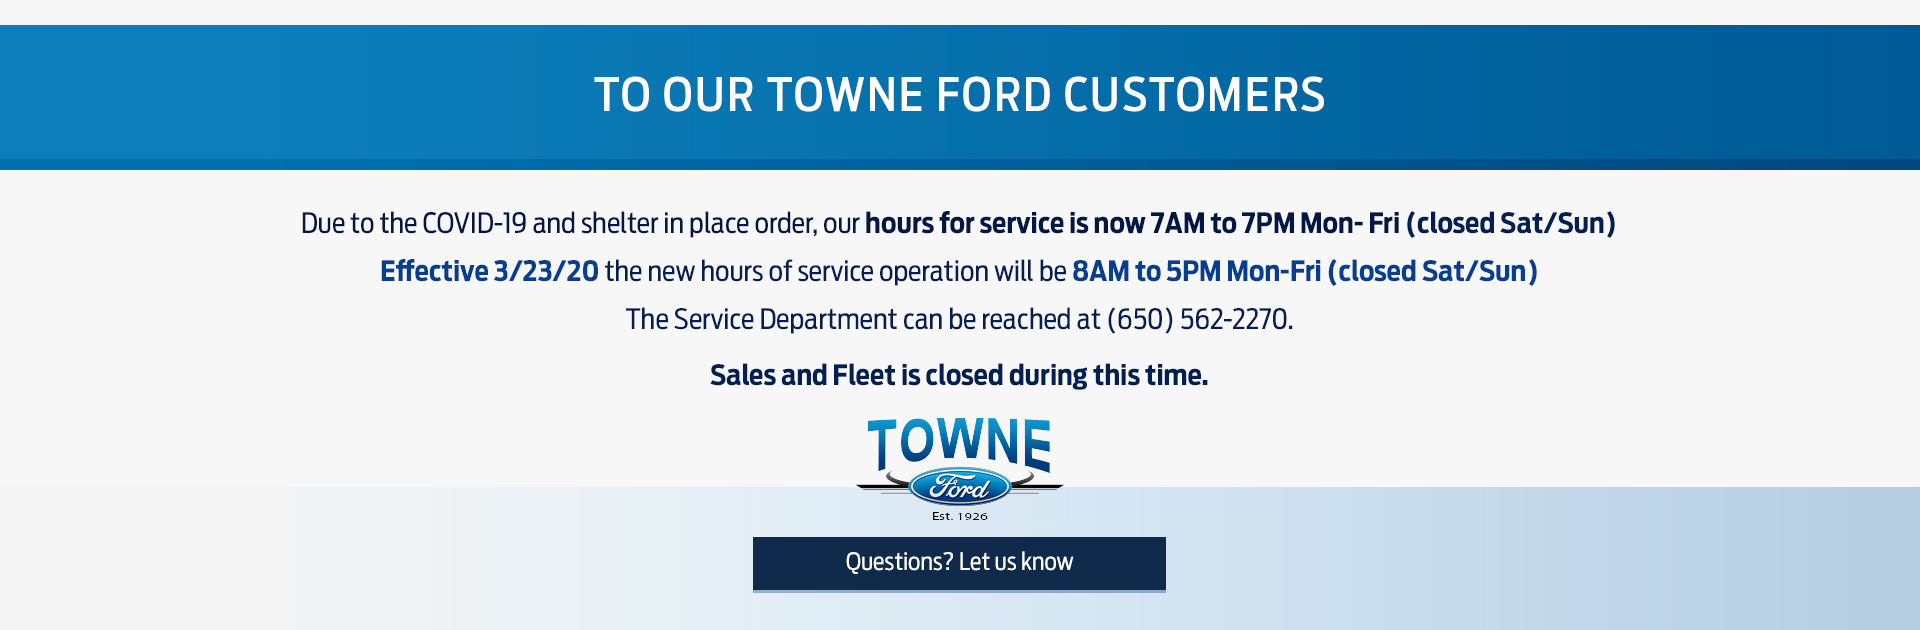 Towne Ford Covid19 Banner1